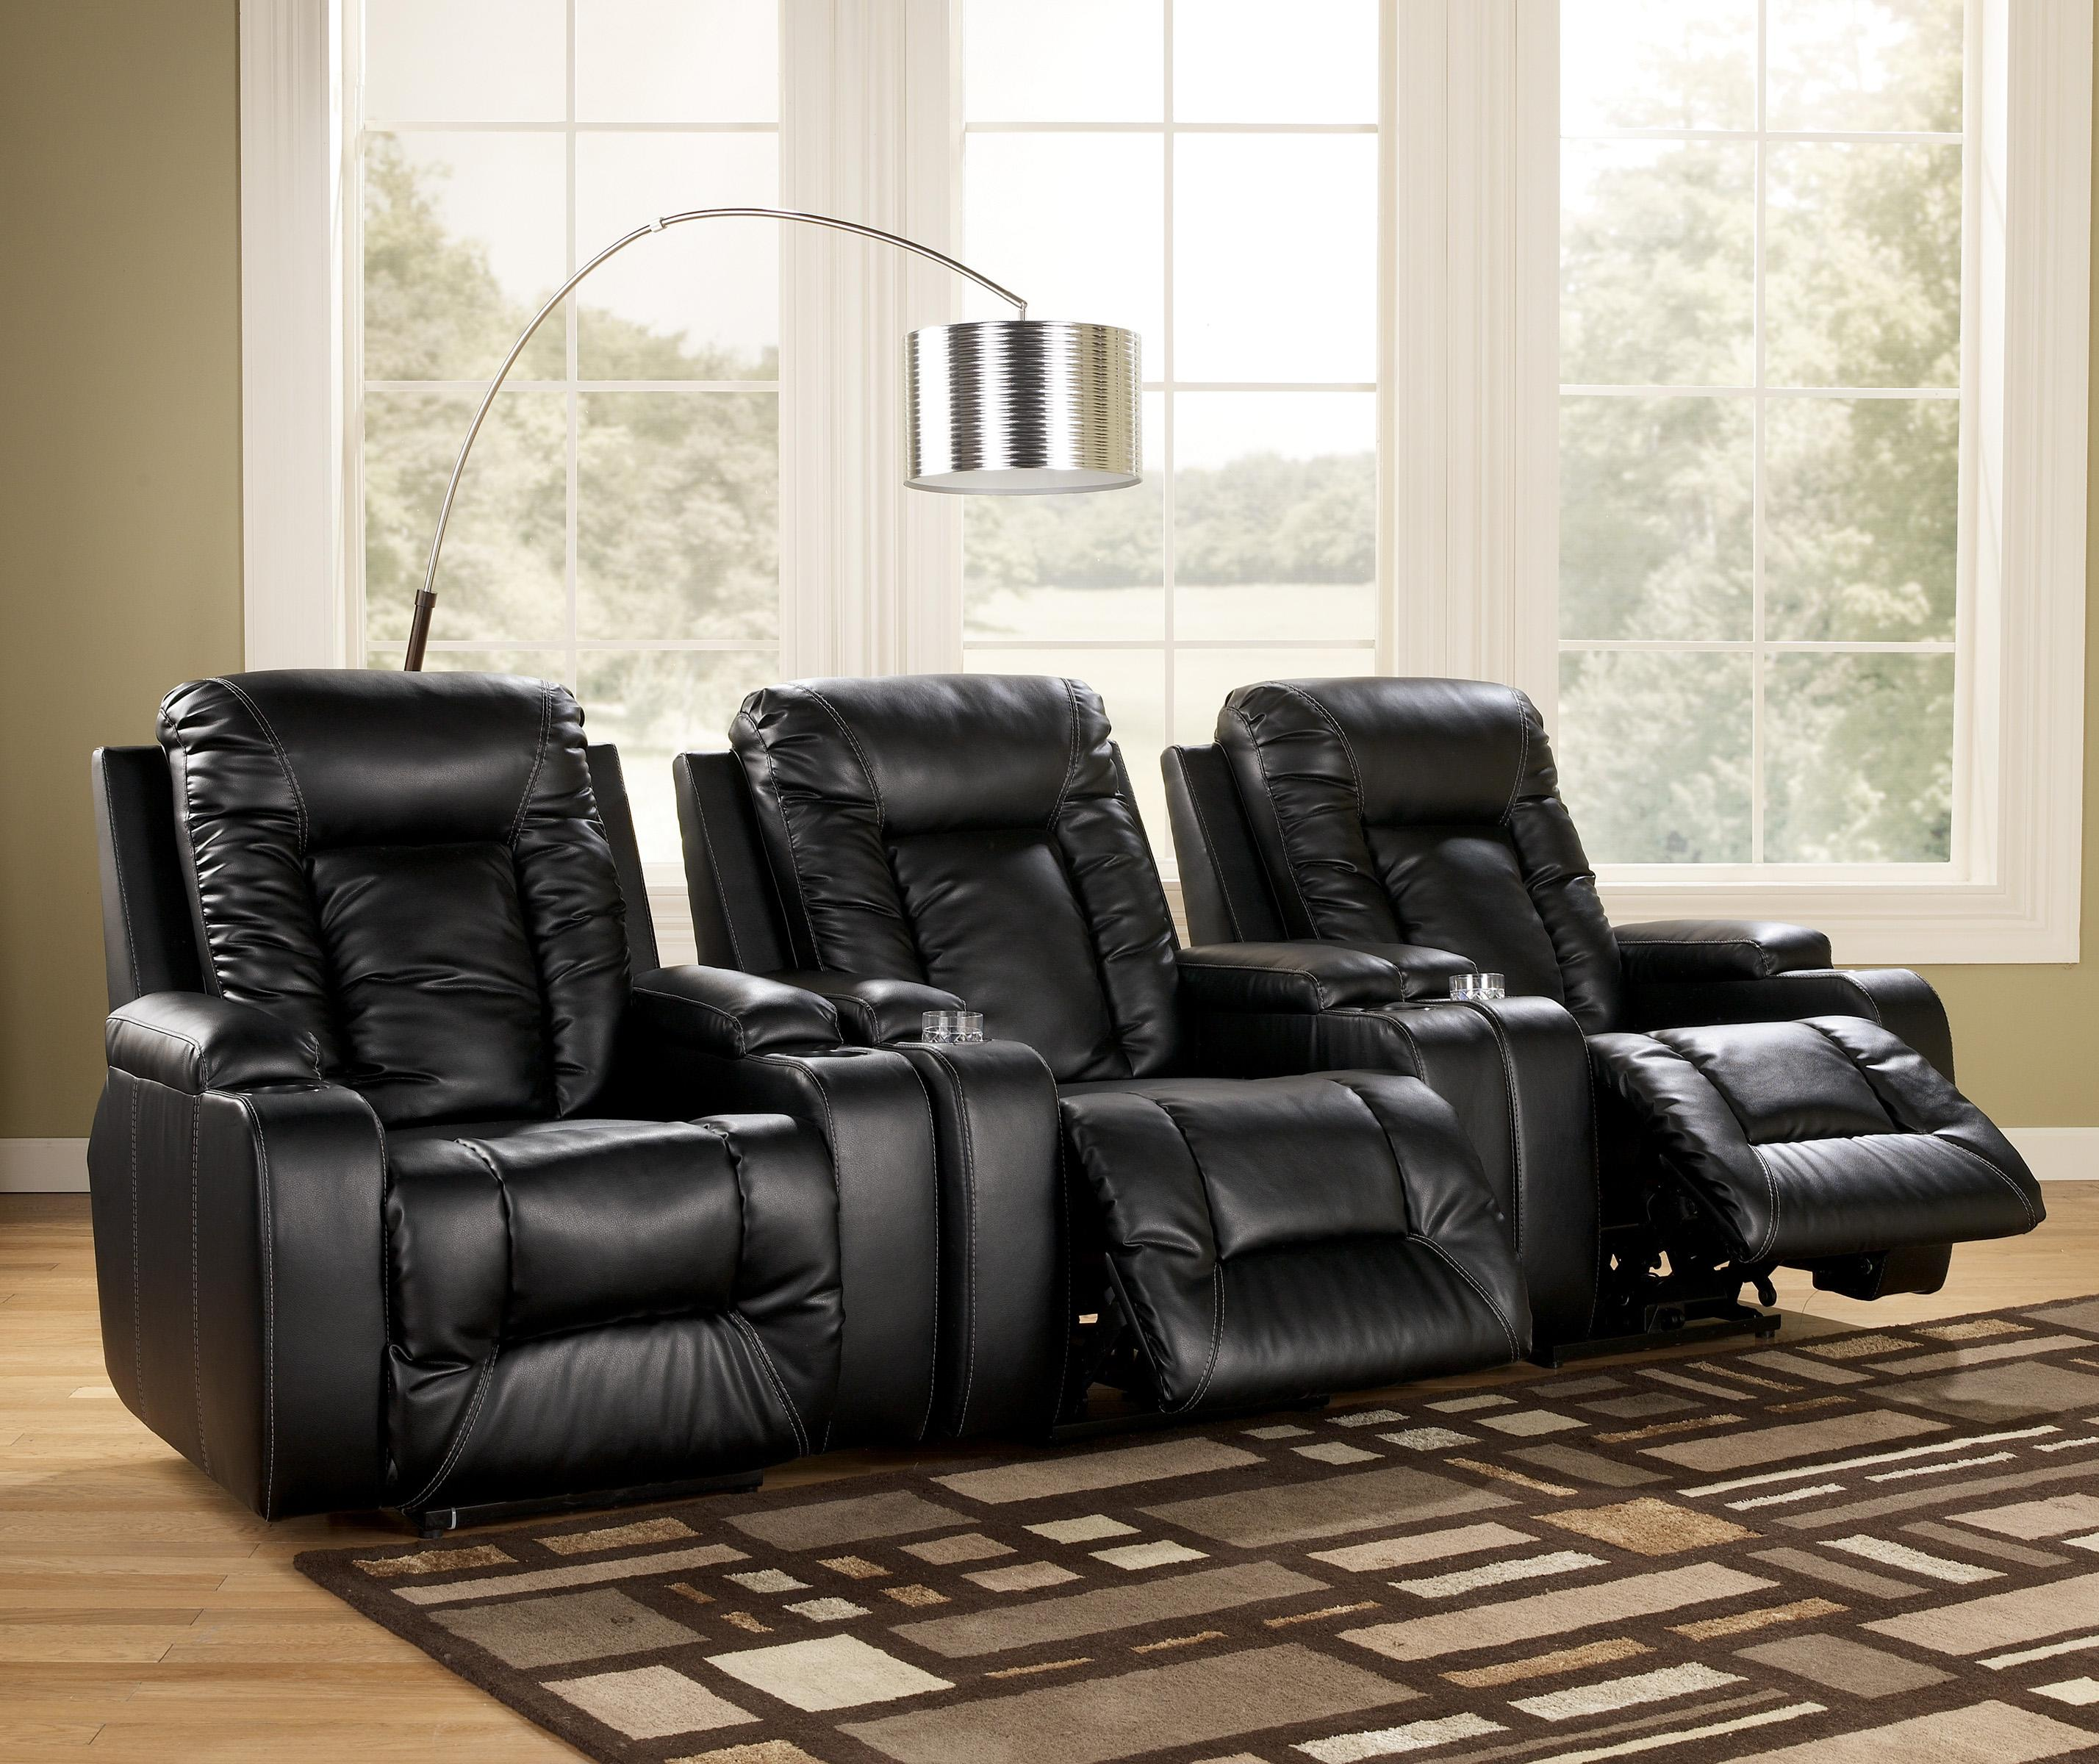 Signature Design by Ashley Matinee DuraBlendu00ae - Eclipse Contemporary Recliner with Power - Royal ...